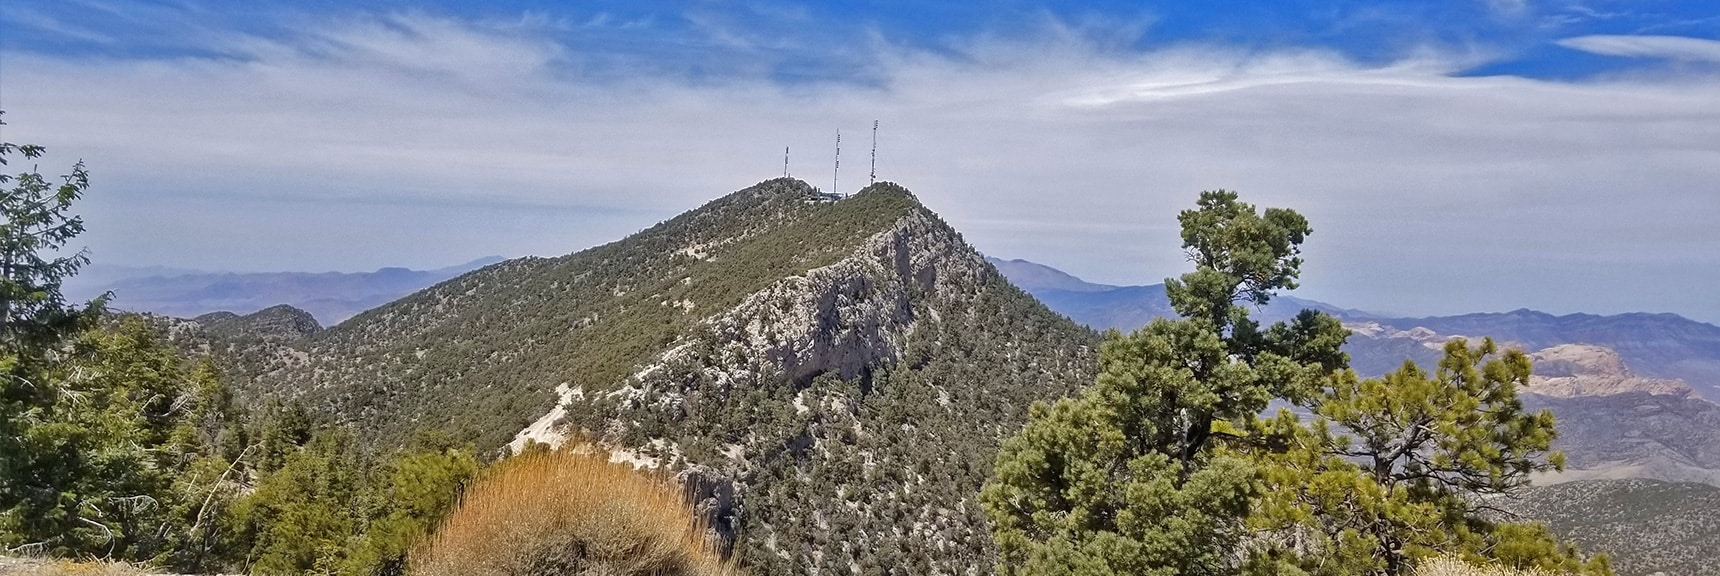 North Summit Viewed from the Mid-Summit. | Potosi Mountain Spring Mountains Nevada